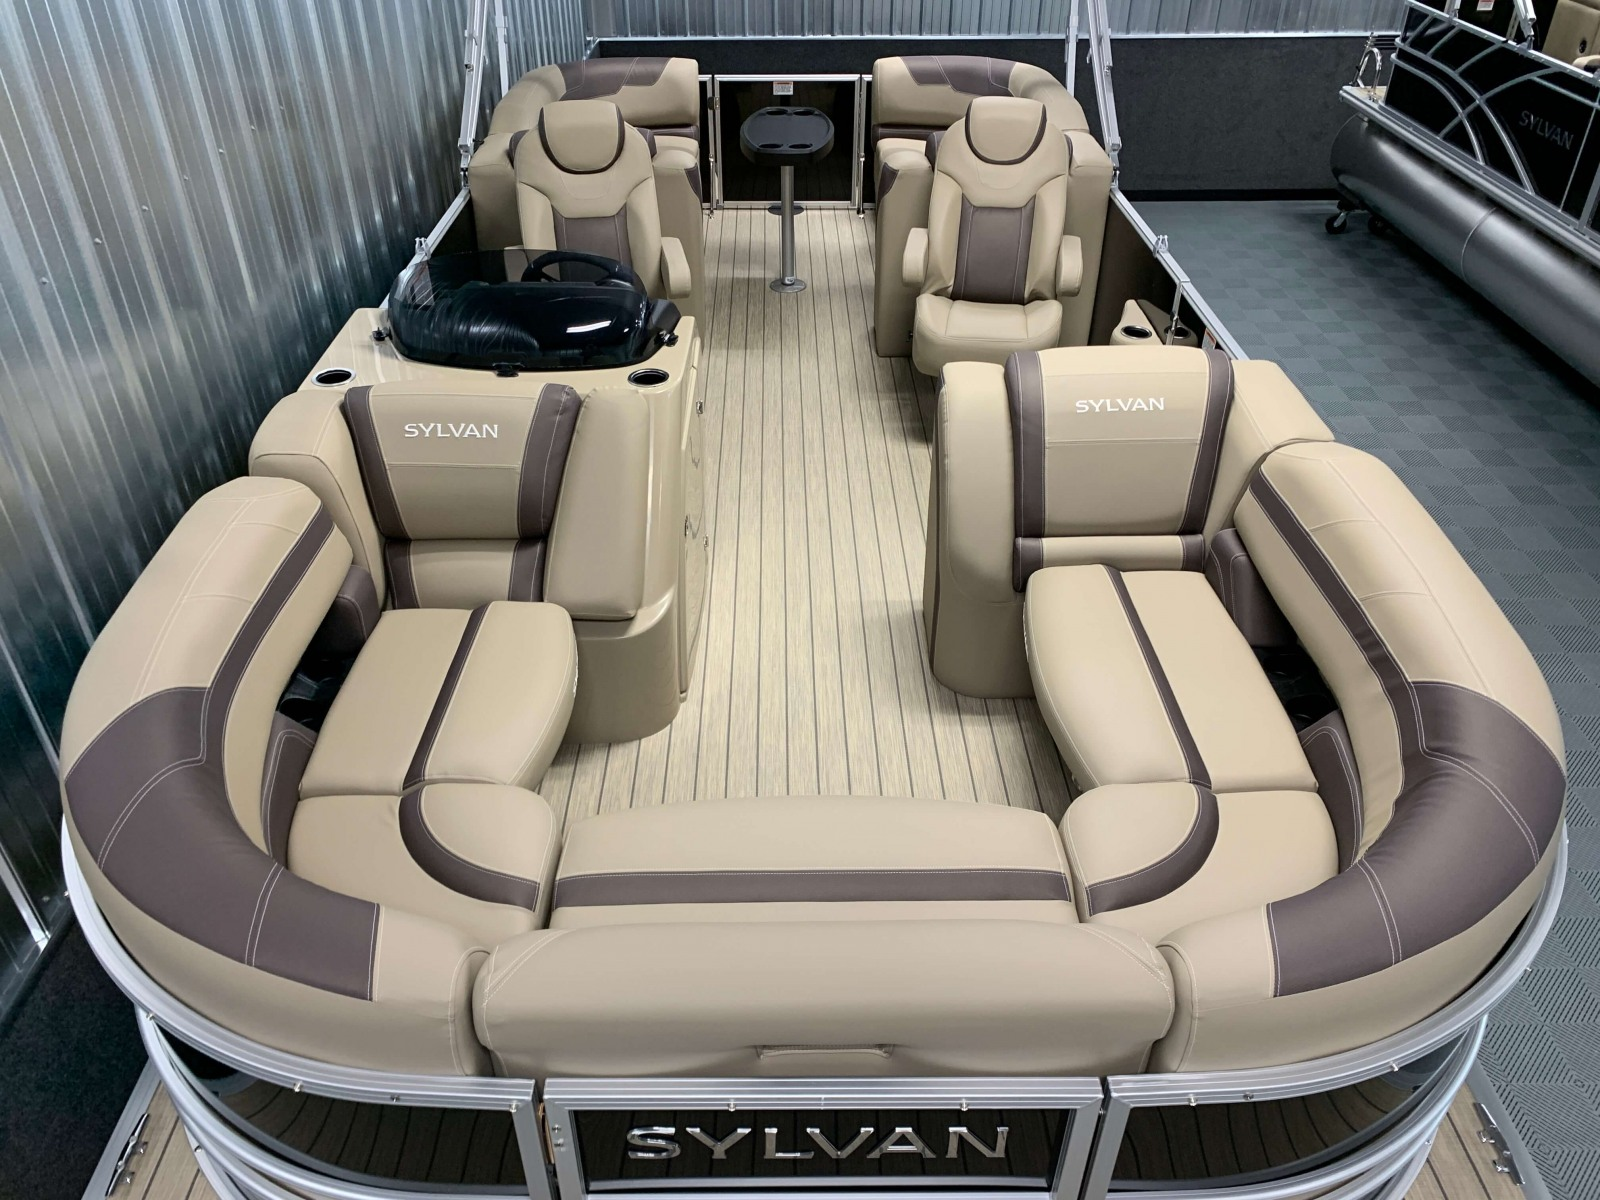 Tan Teak Weave Vinyl Flooring of a 2020 Sylvan L3 Cruise Pontoon